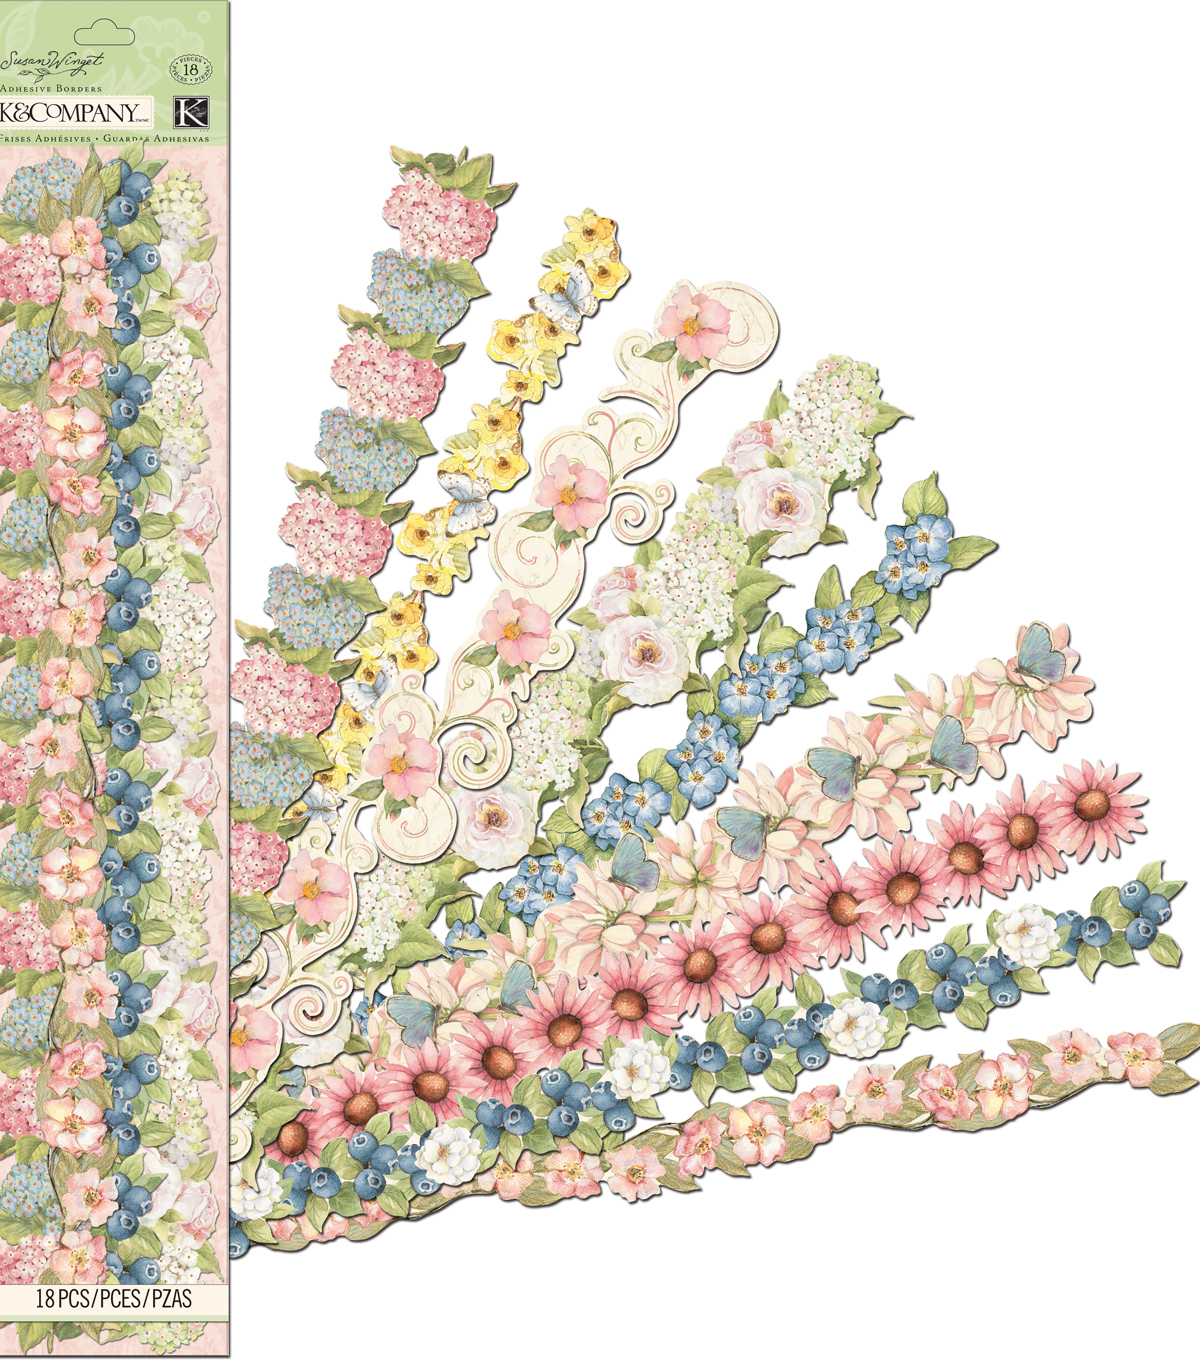 K&Company Susan Winget 18 pk Floral Adhesive Borders Stickers